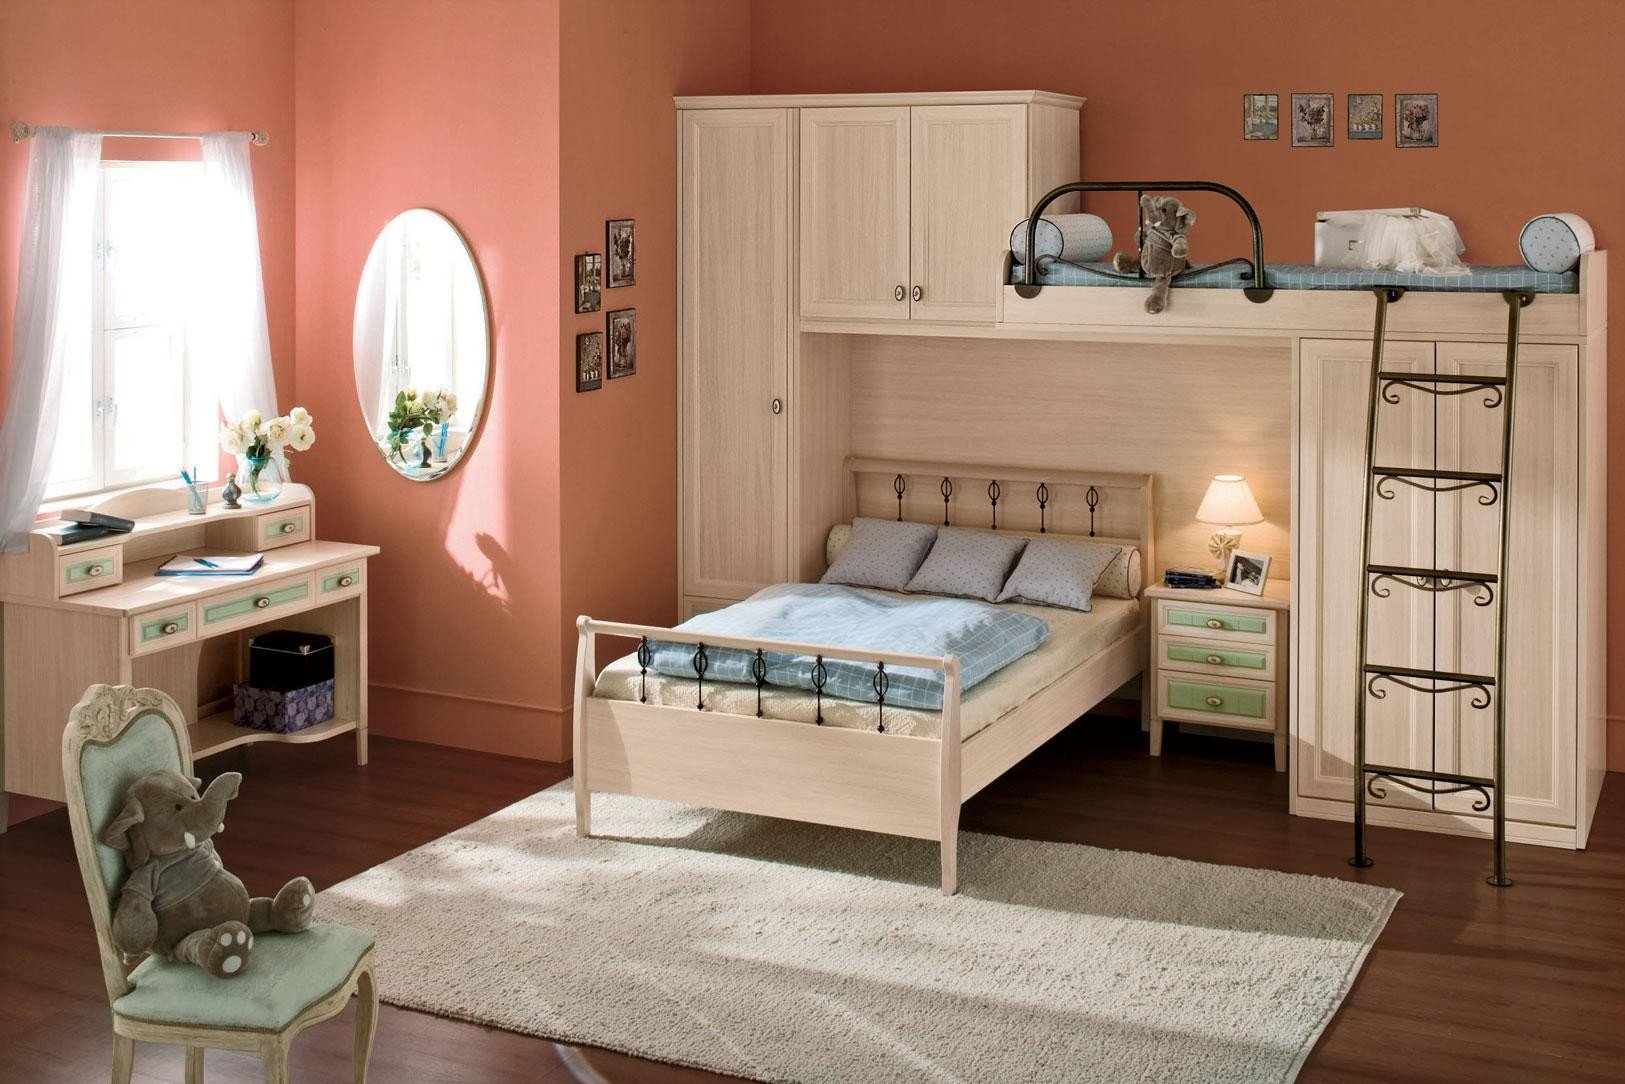 Paul Bunyan Bedroom Set Awesome ashley Furniture Kid Bedroom Sets Modern and Kids Ikea Ideas